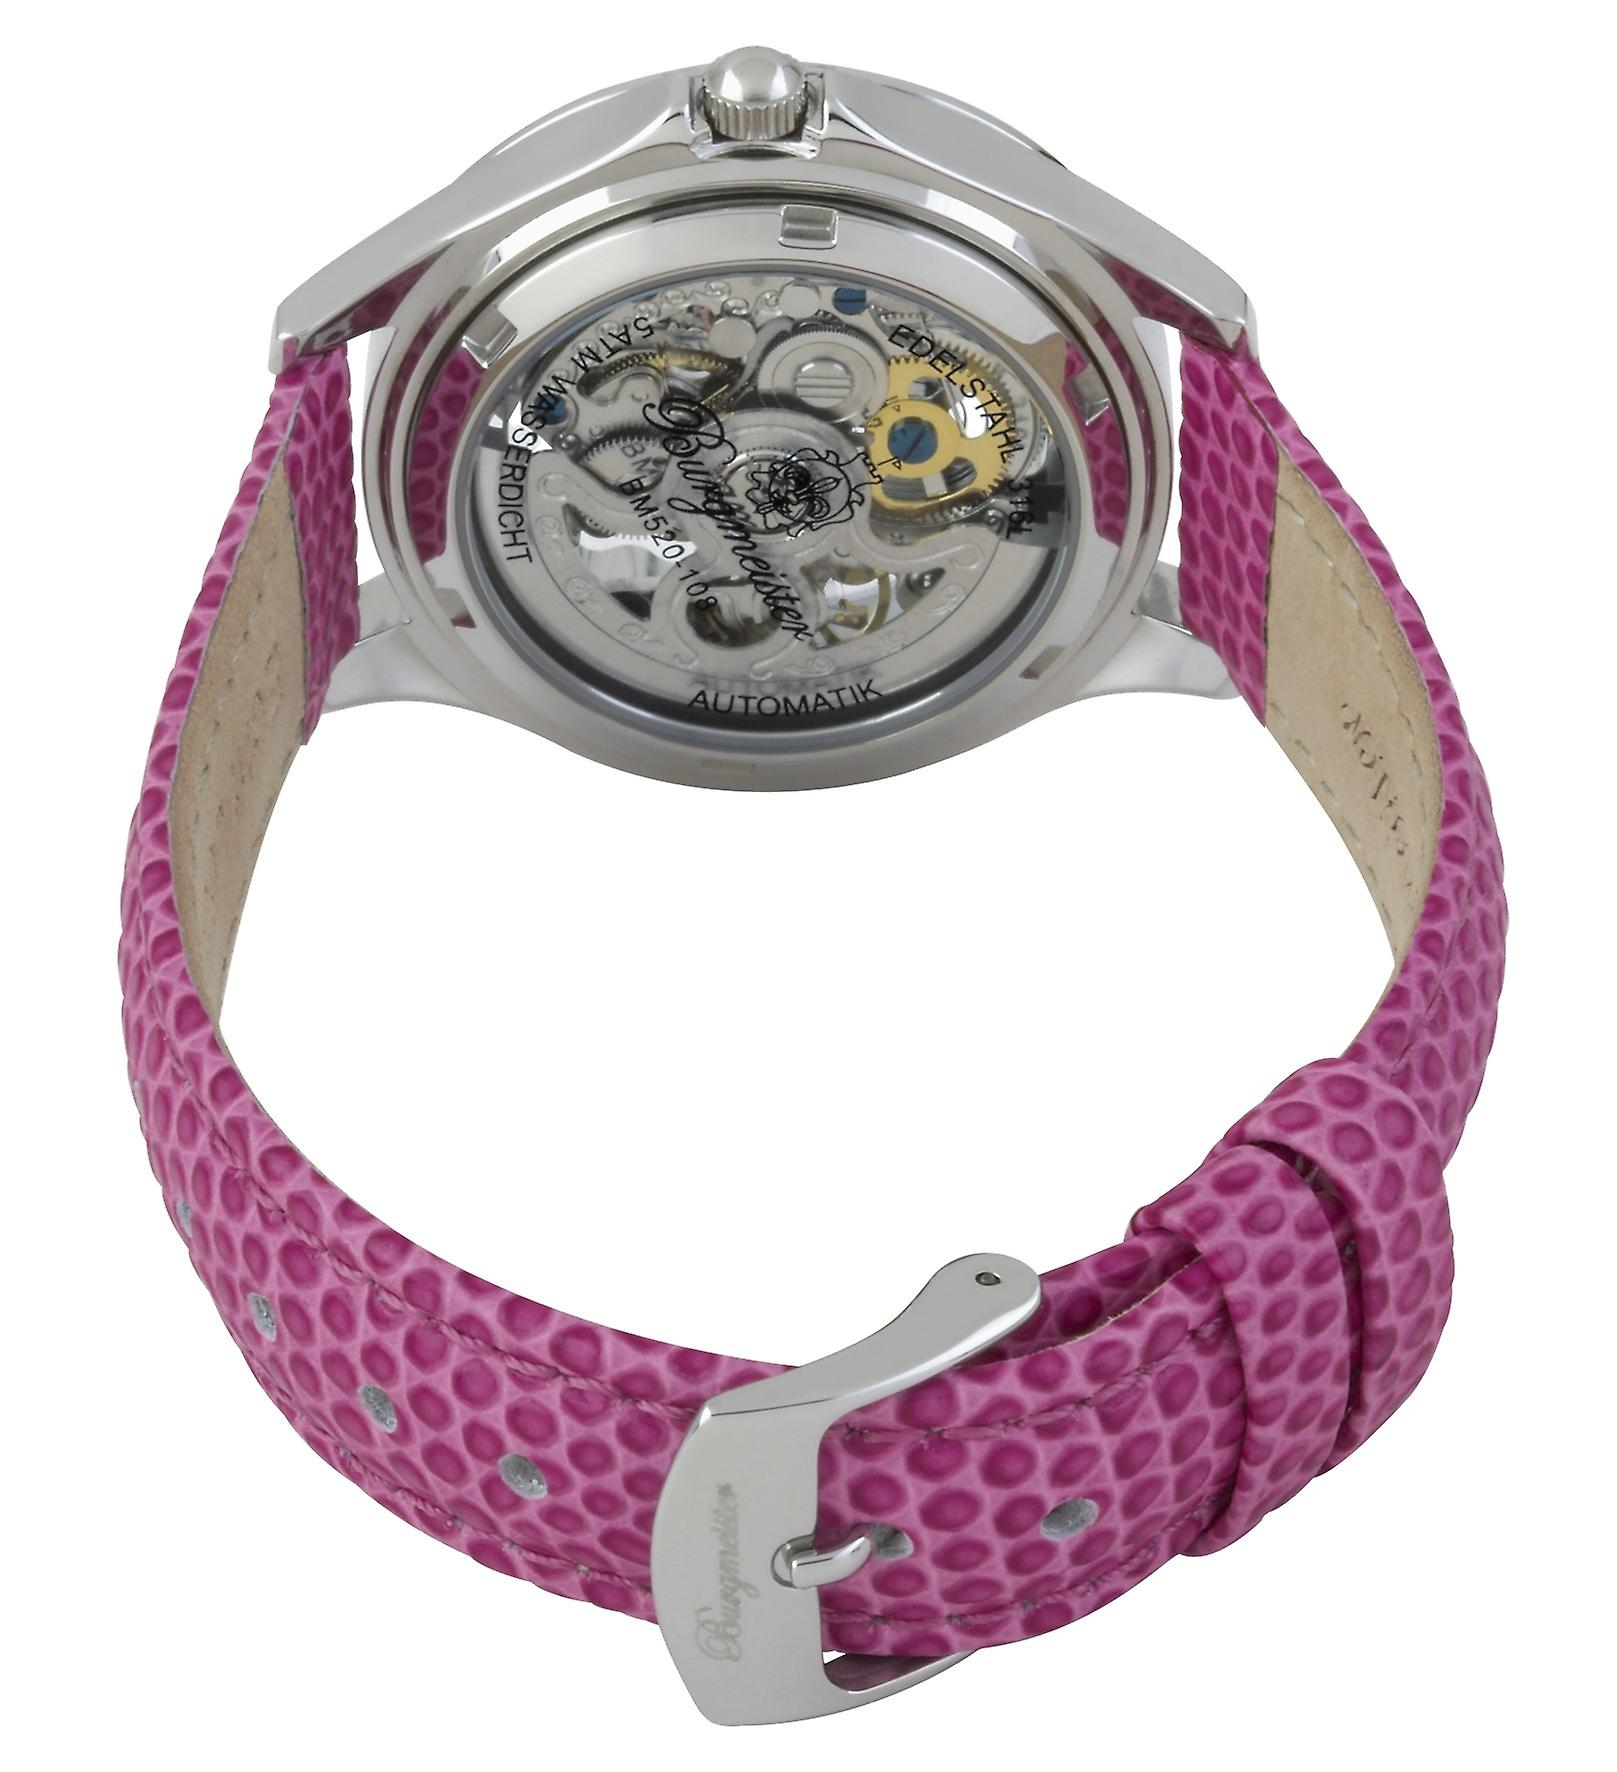 Burgmeister Merida Ladies Automatic Watch BM520-108